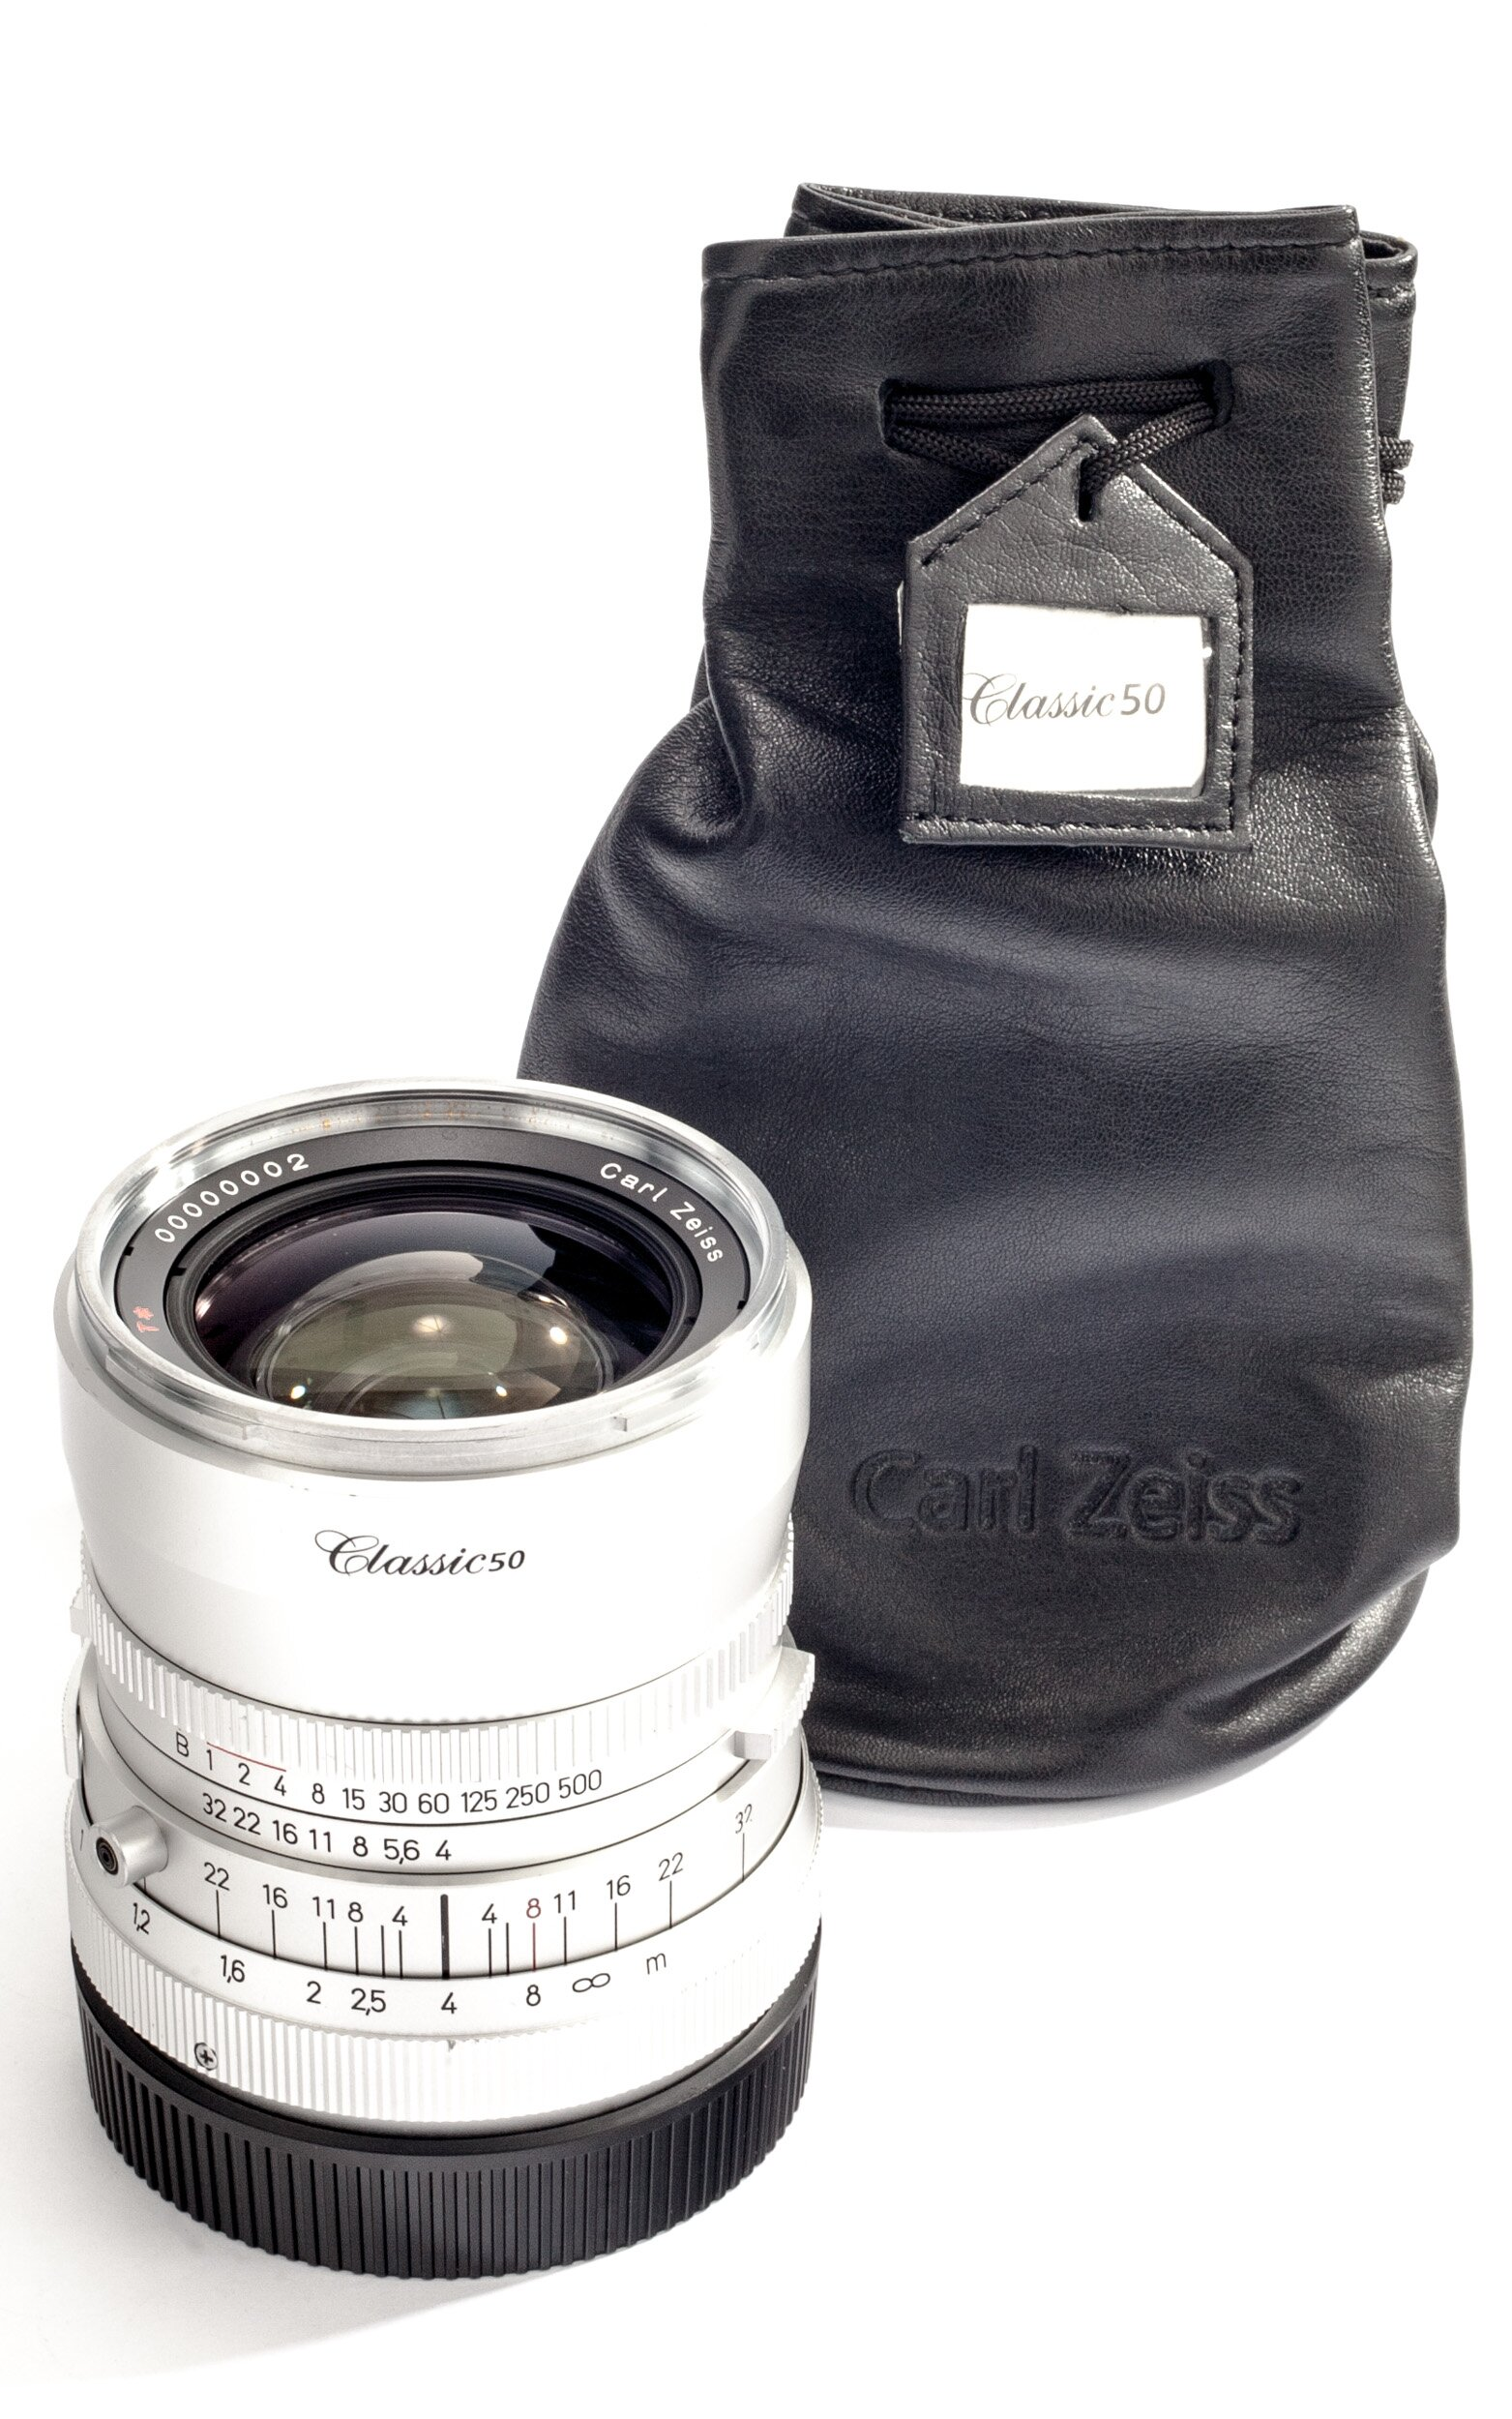 Carl Zeiss f. Hasselblad V 4/50mm Distagon ZV T* Classic prototype 0-series